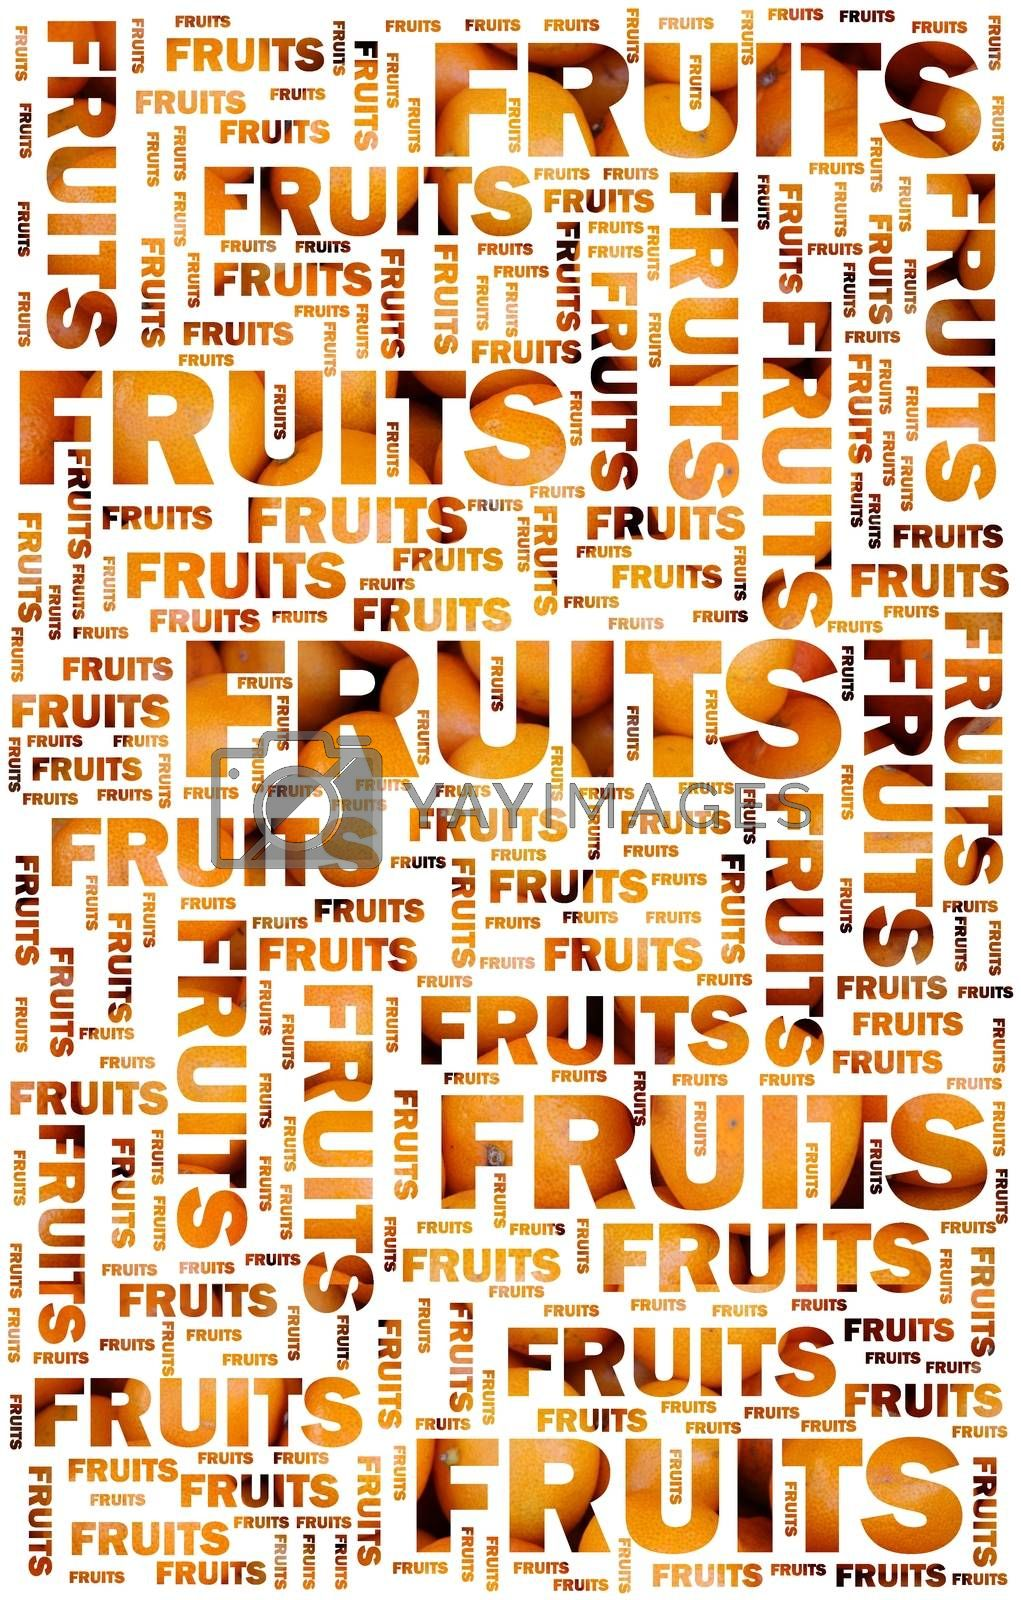 Fruits text with oranges by alessandro0770